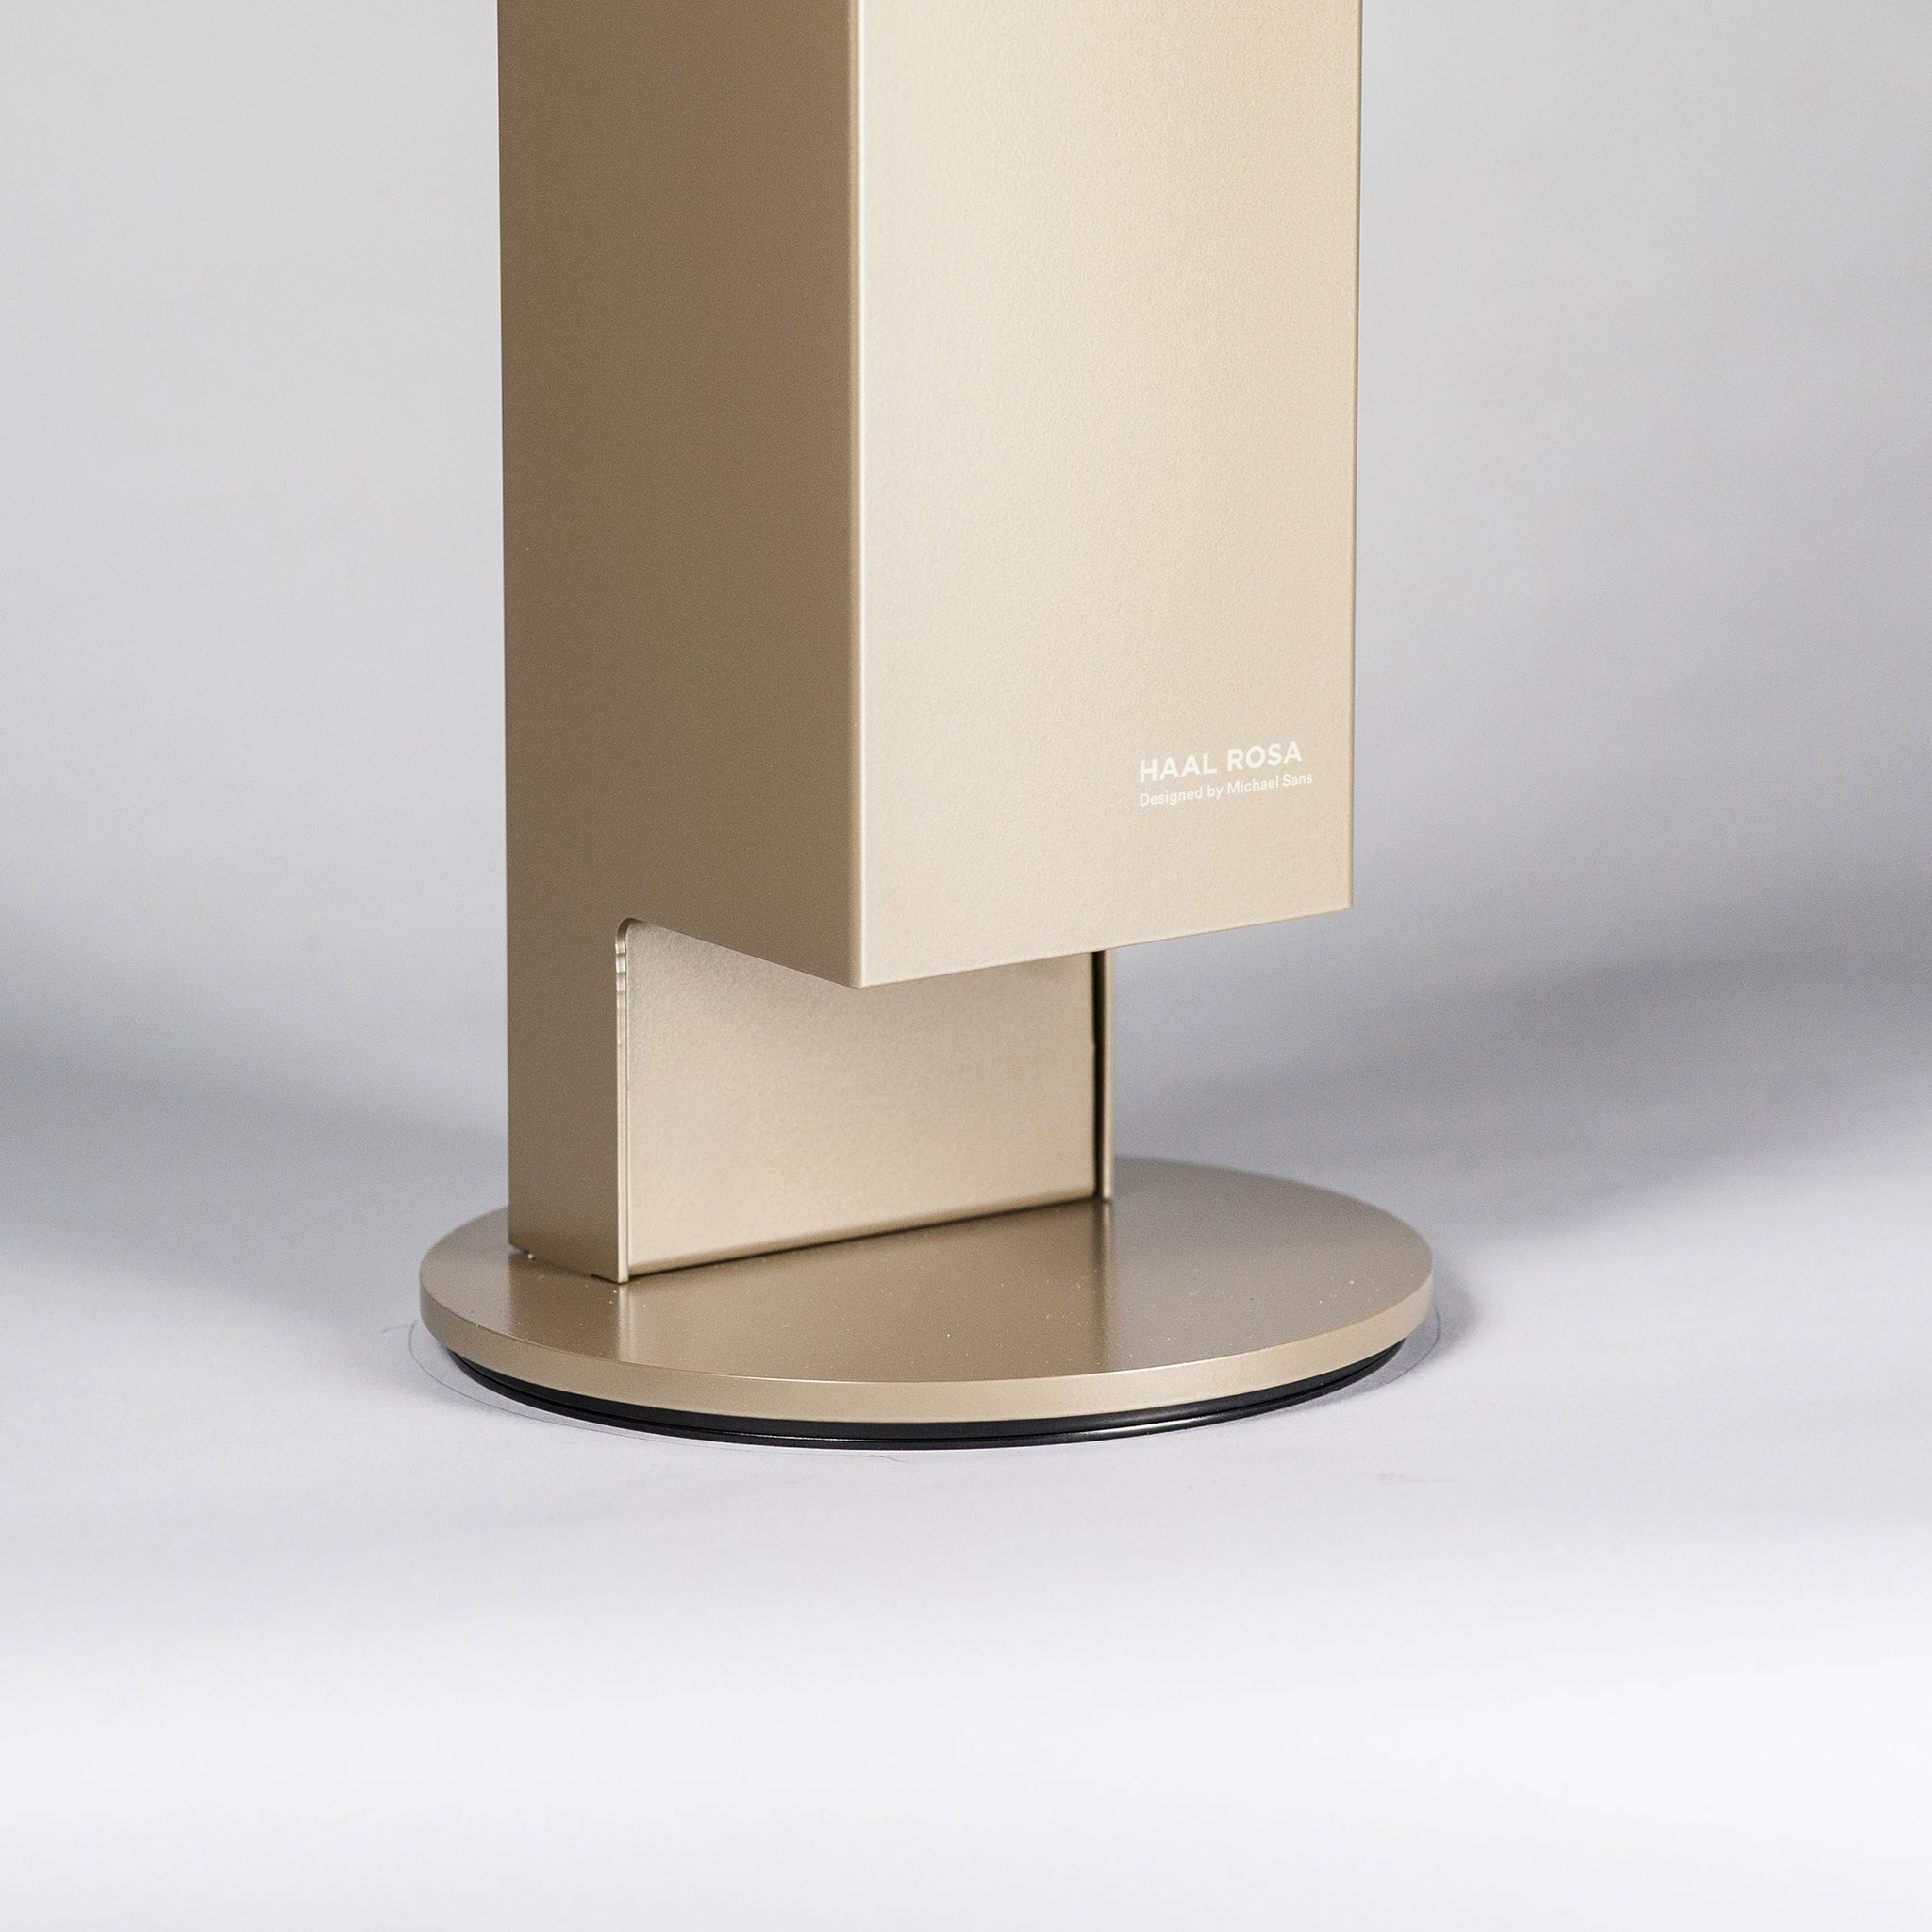 HAAL ROSA Scenting Device B1 in RAL 1035, Perlbeige (powder-coated)